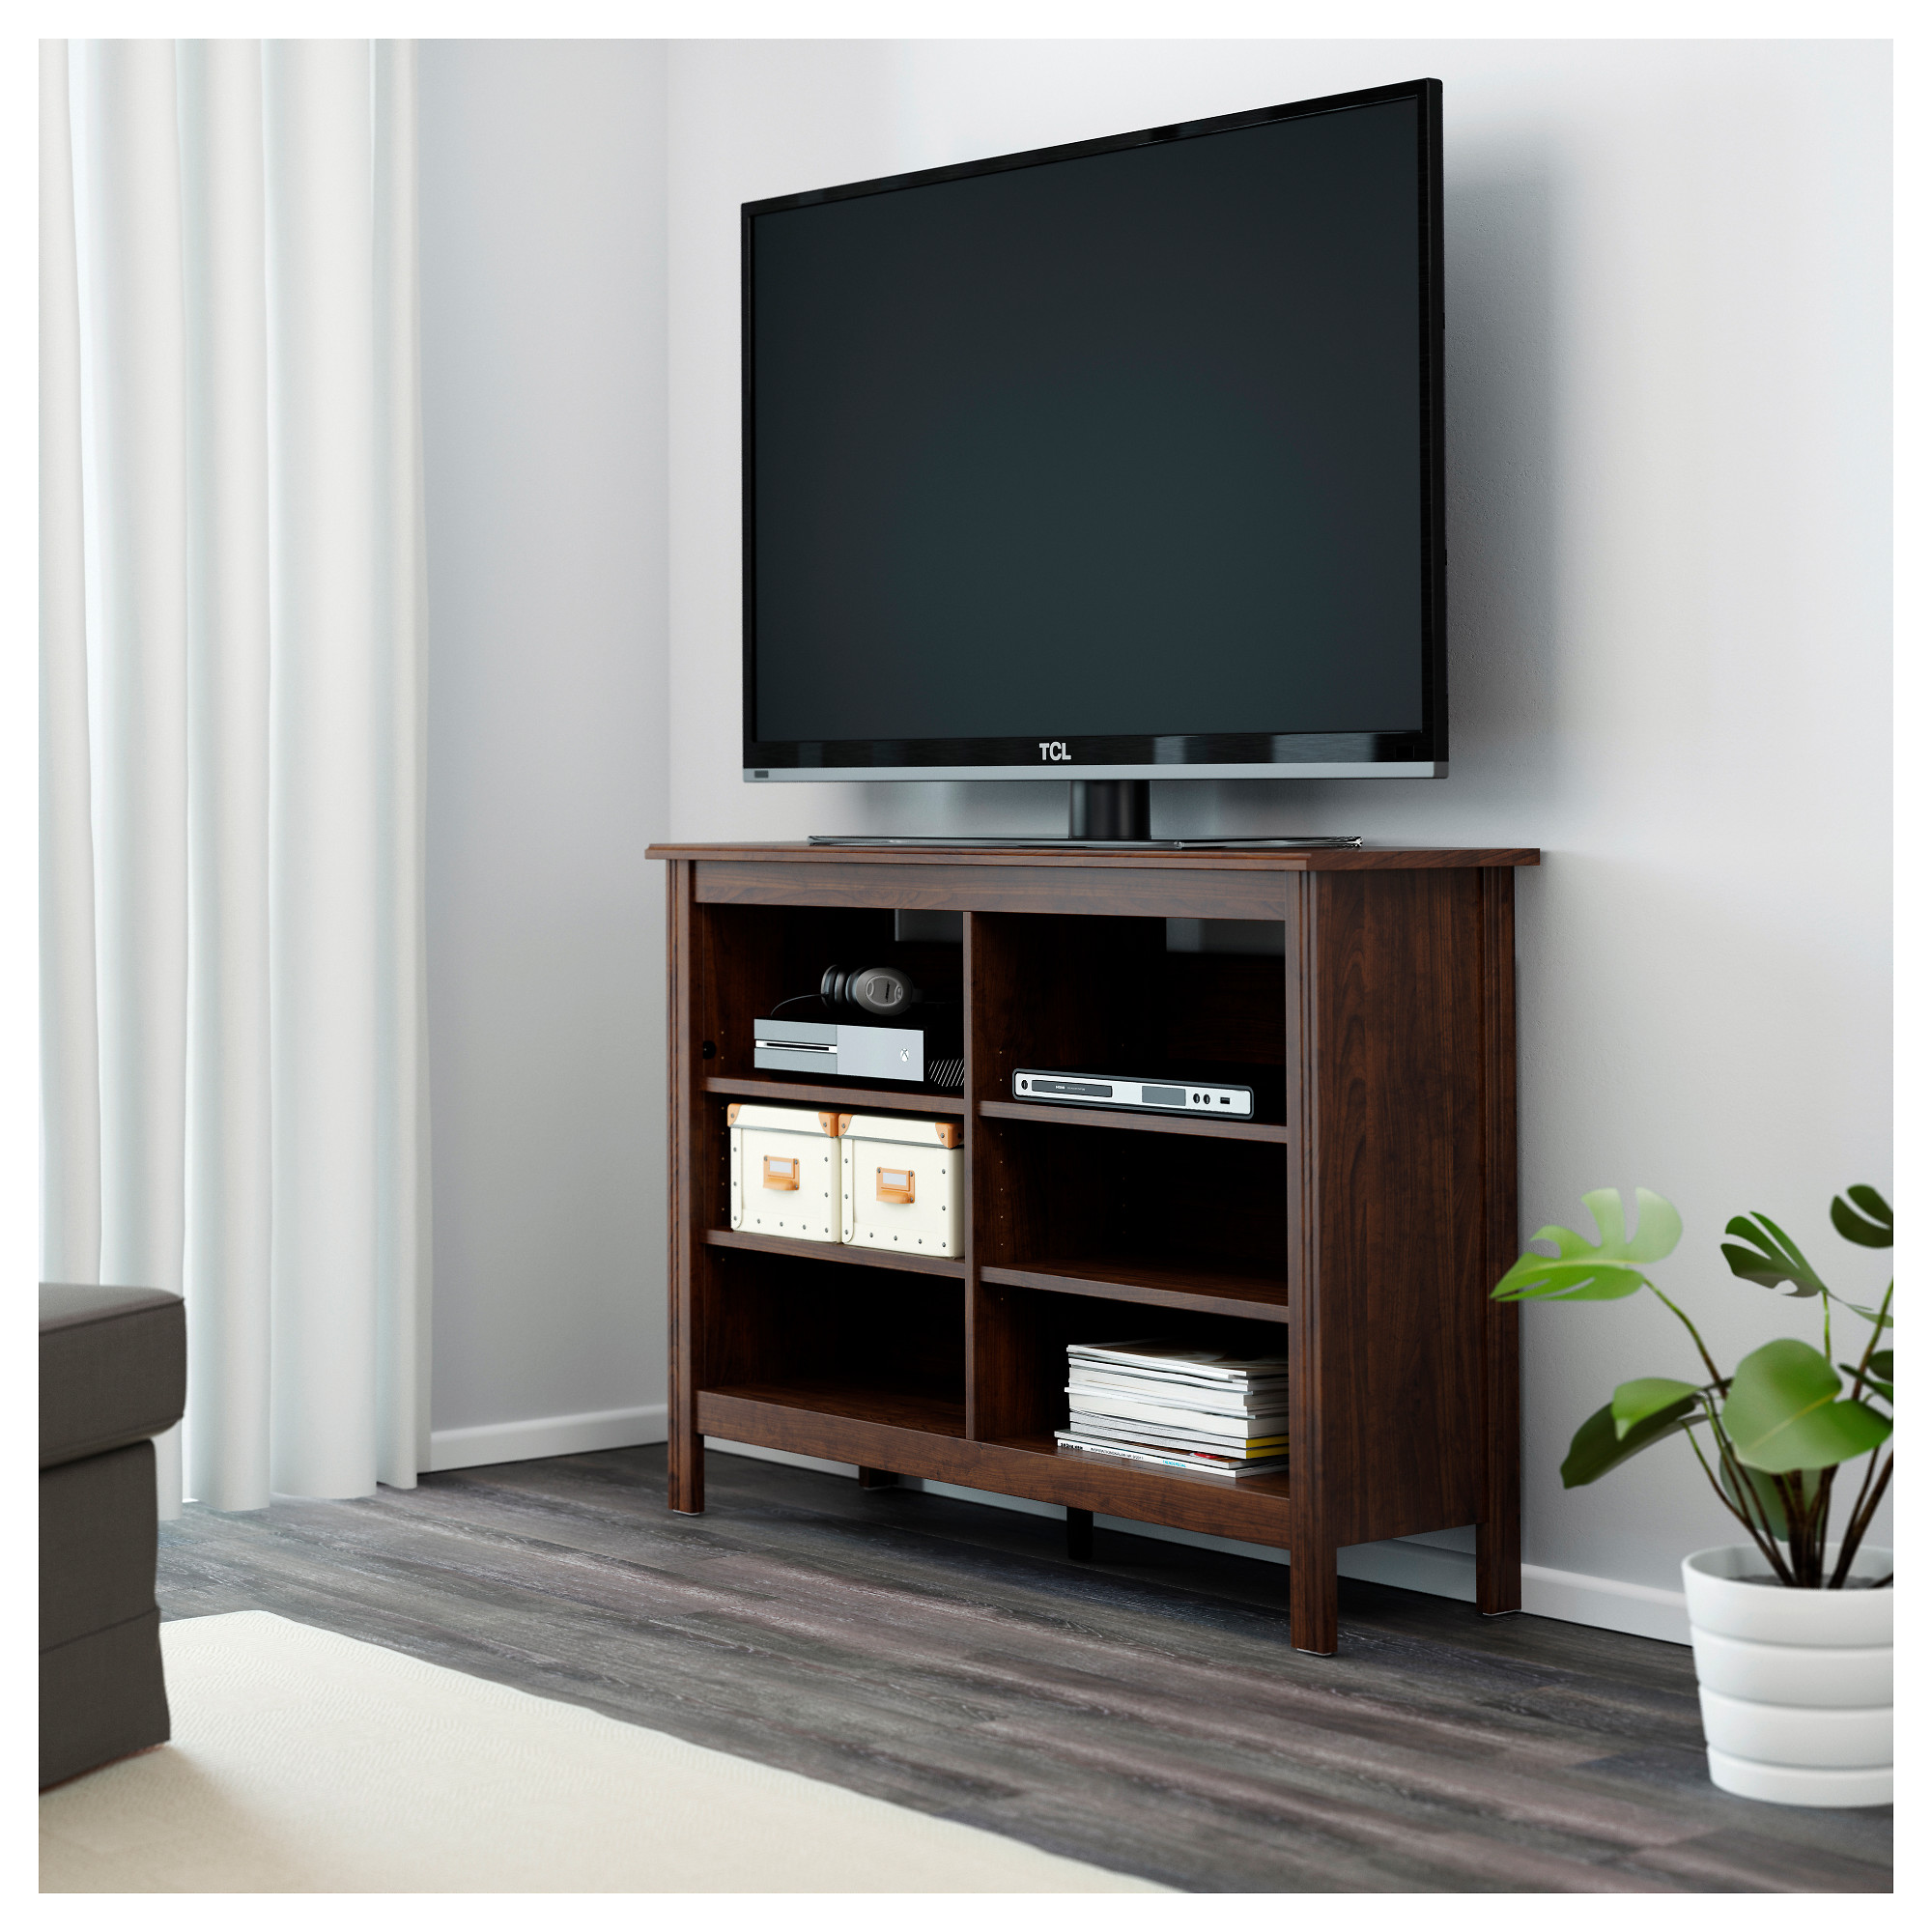 Brusali tv unit brown ikea